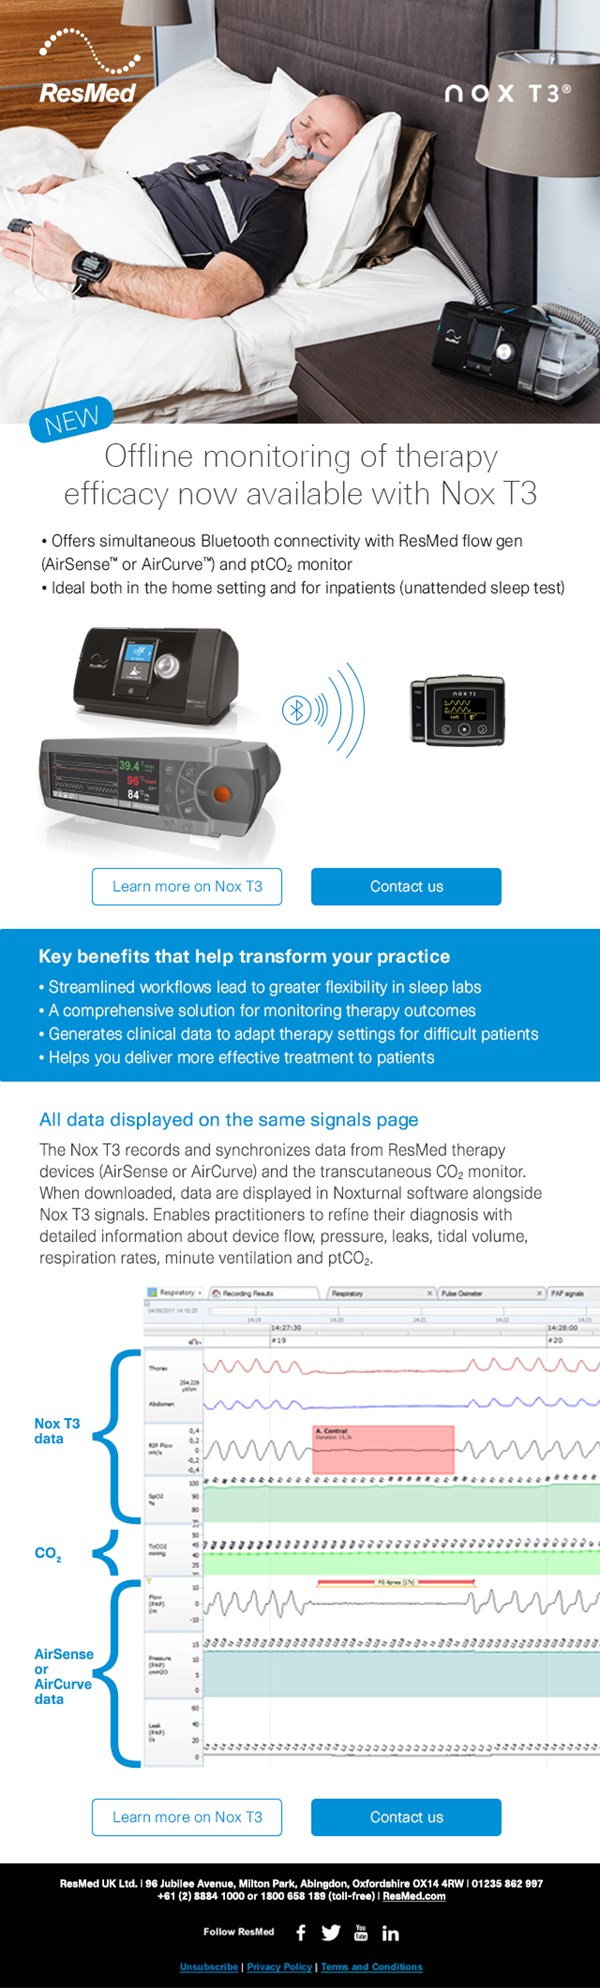 Therapy Efficacy Monitoring with Nox T3 - Nox Medical